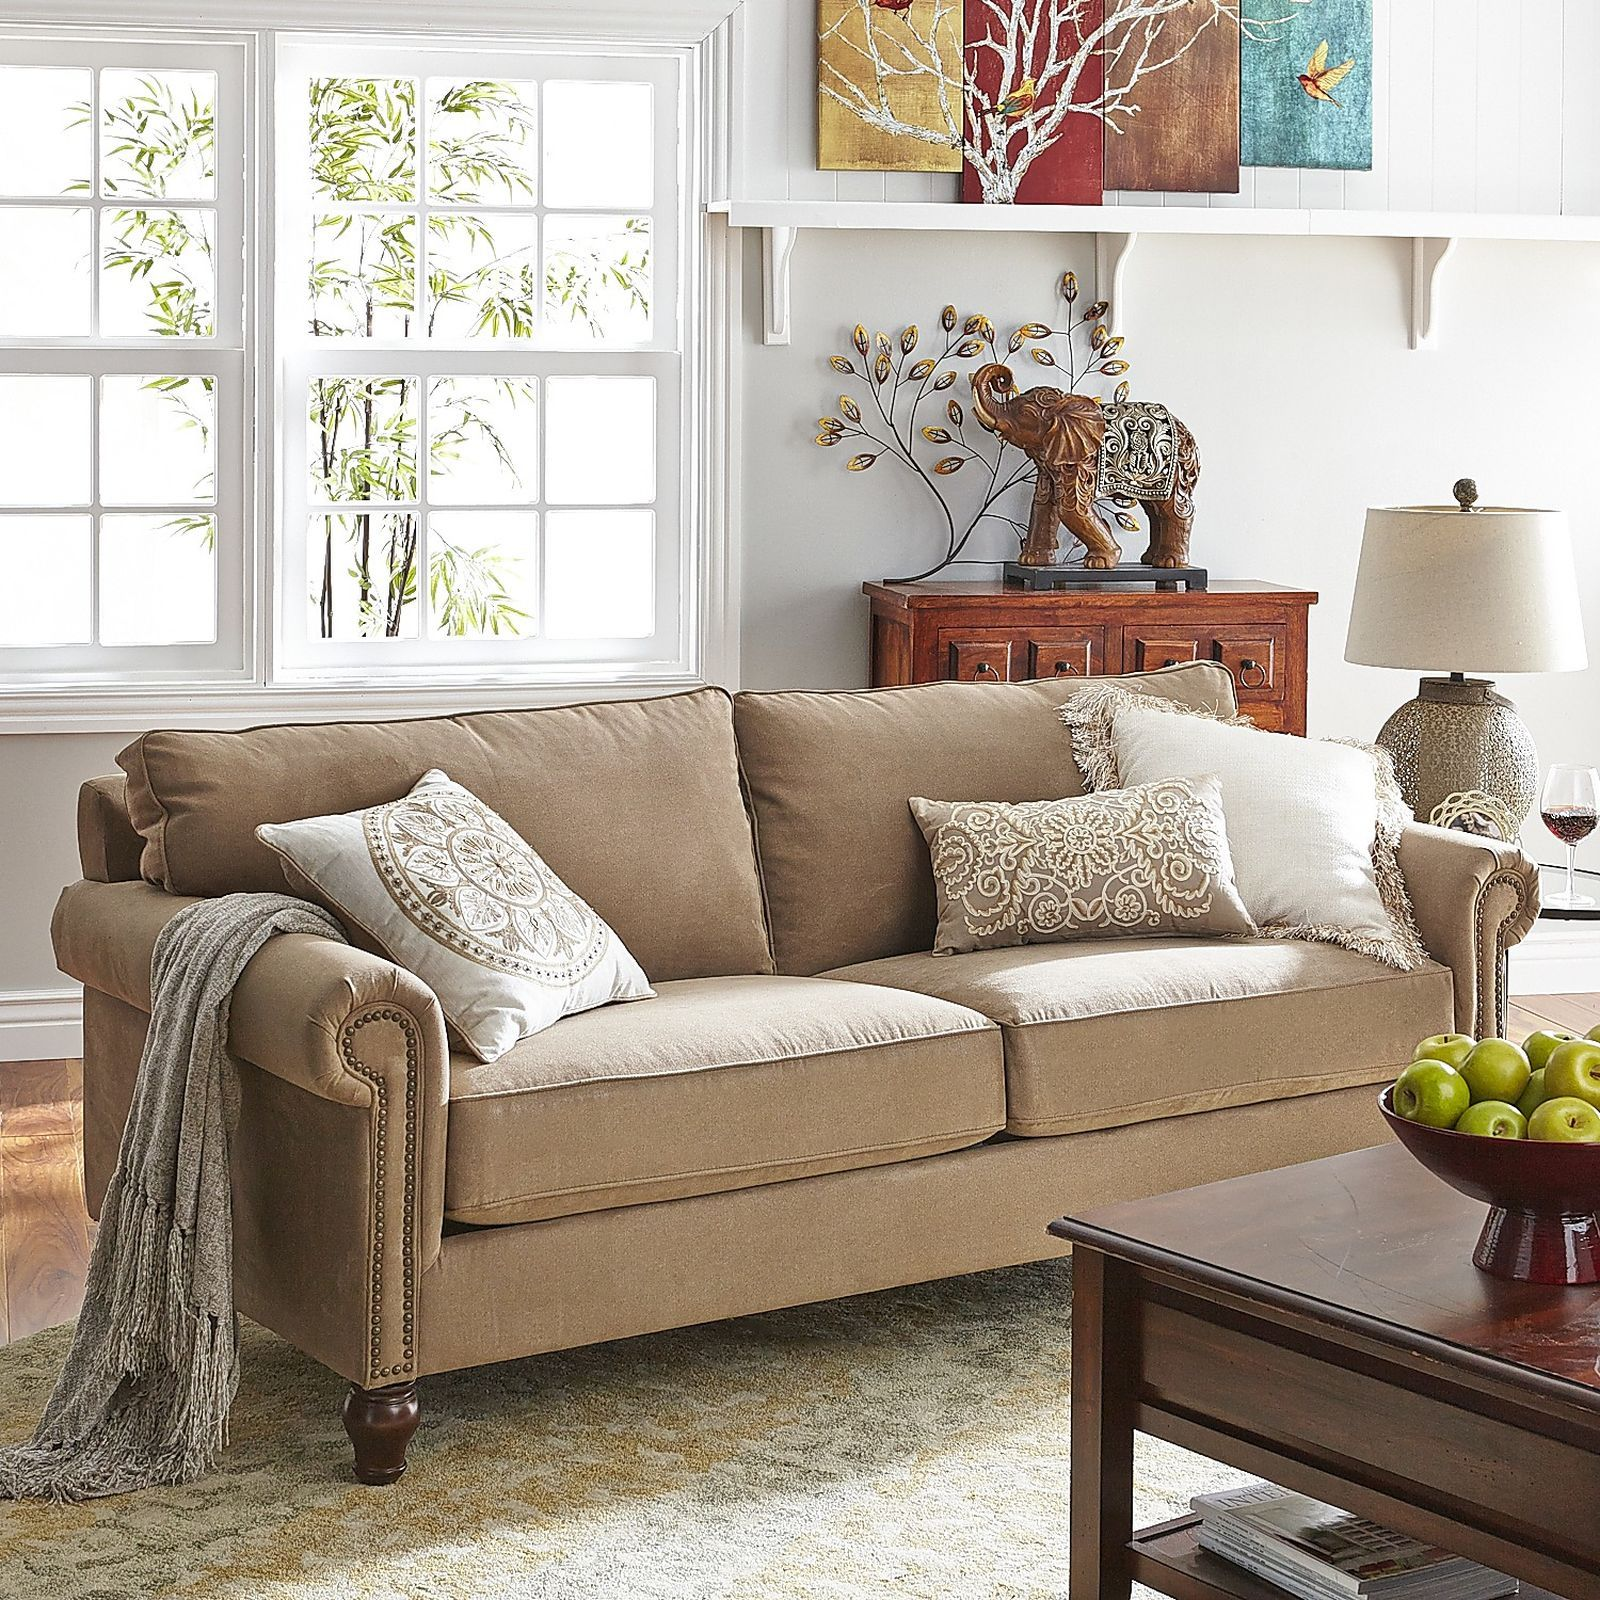 Neutral Sofa With Classic Roll Arm Design And Nailheads. Love The Soutache  Pattern And Medallion Pattern On The Throw Pillows. Pier One.